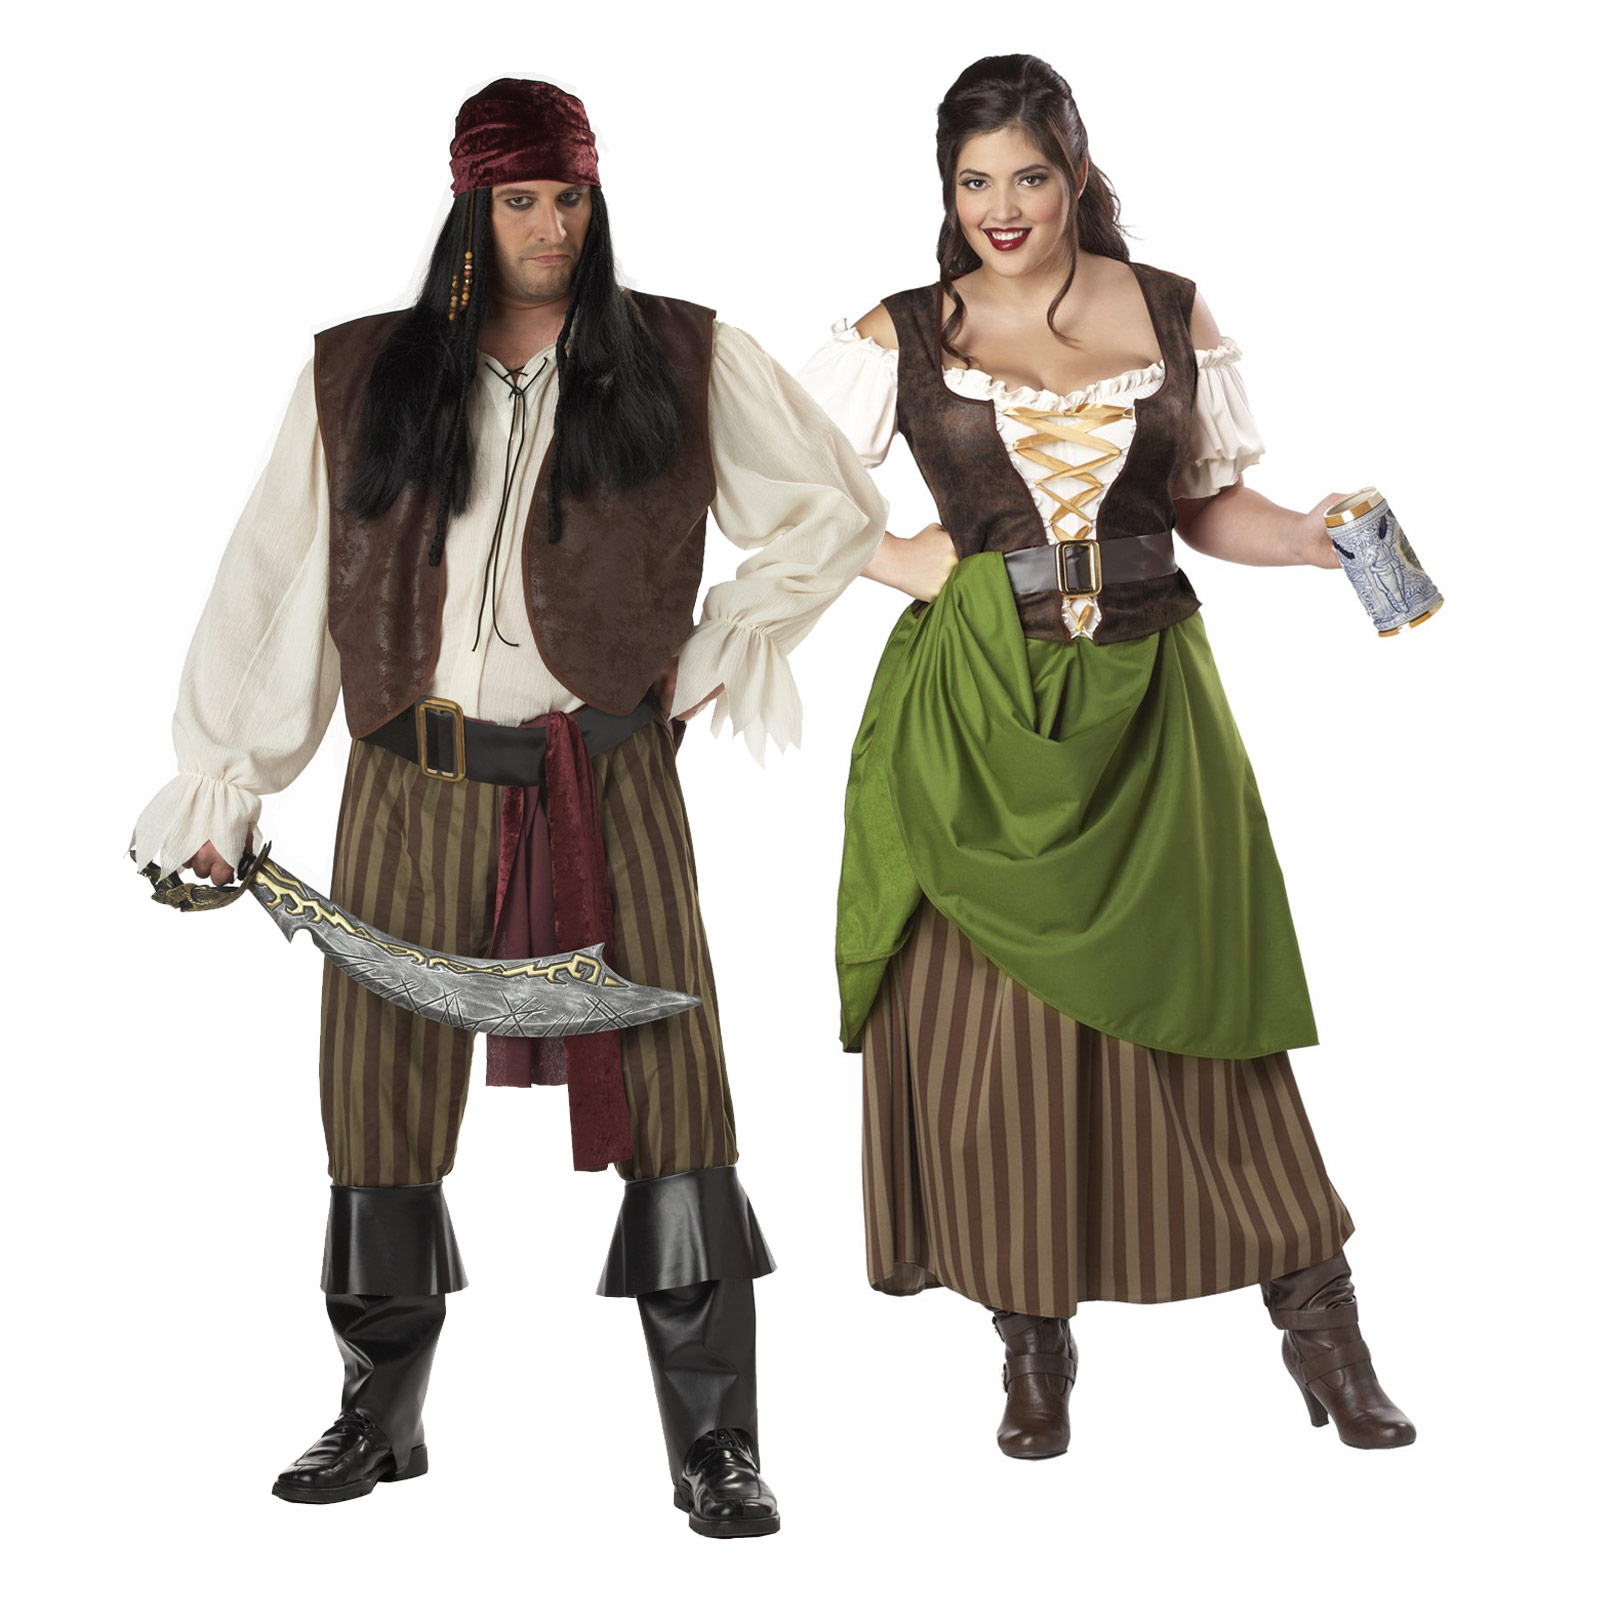 Halloween Costumes For Adult Couples 2014-2015